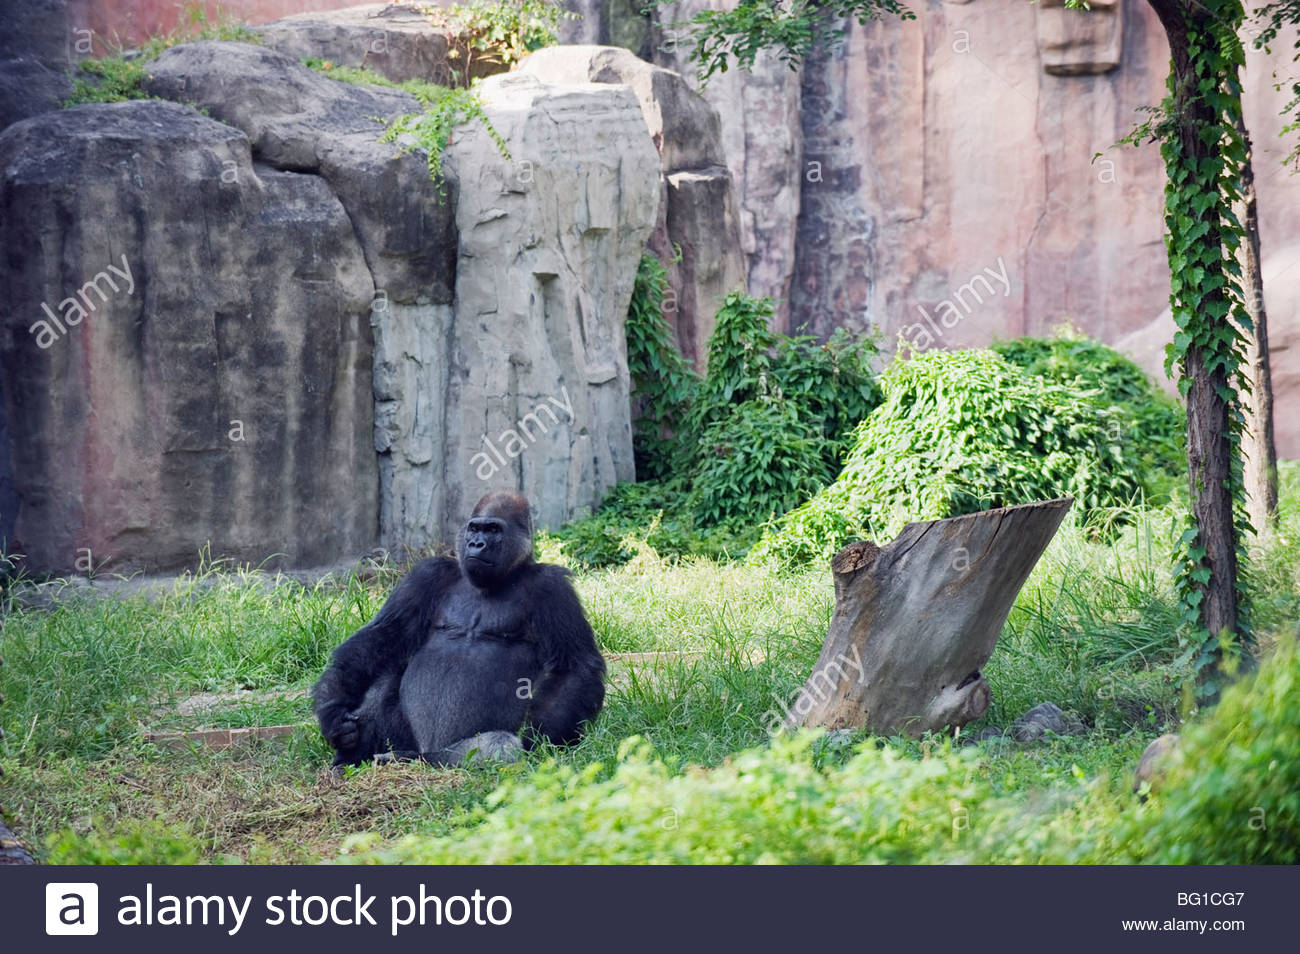 Theatre Stage Běijīng, A gorilla sitting at Beijing Zoo, Beijing, China, Asia Stock Photo ...